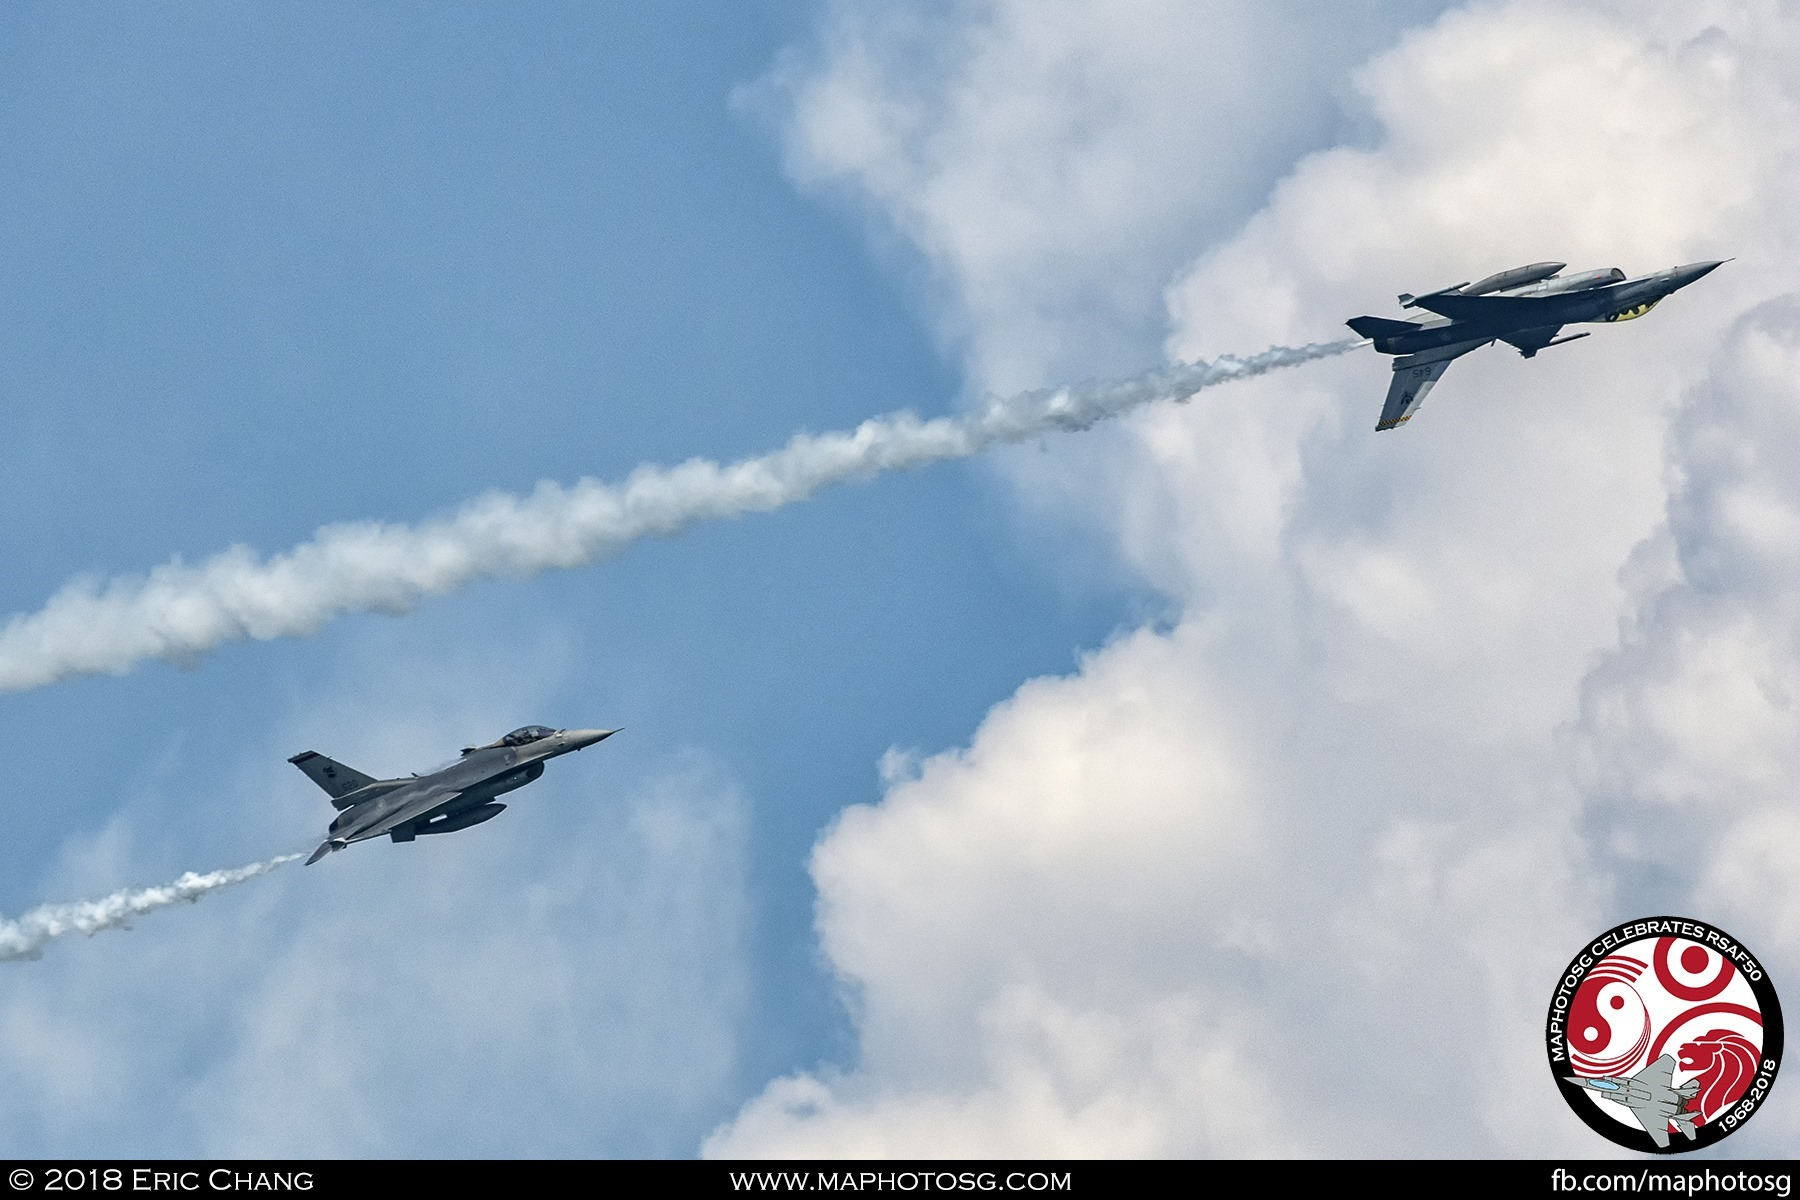 Inverted Helix – One of the F-16 flies inverted while the other executes a helix behind it.